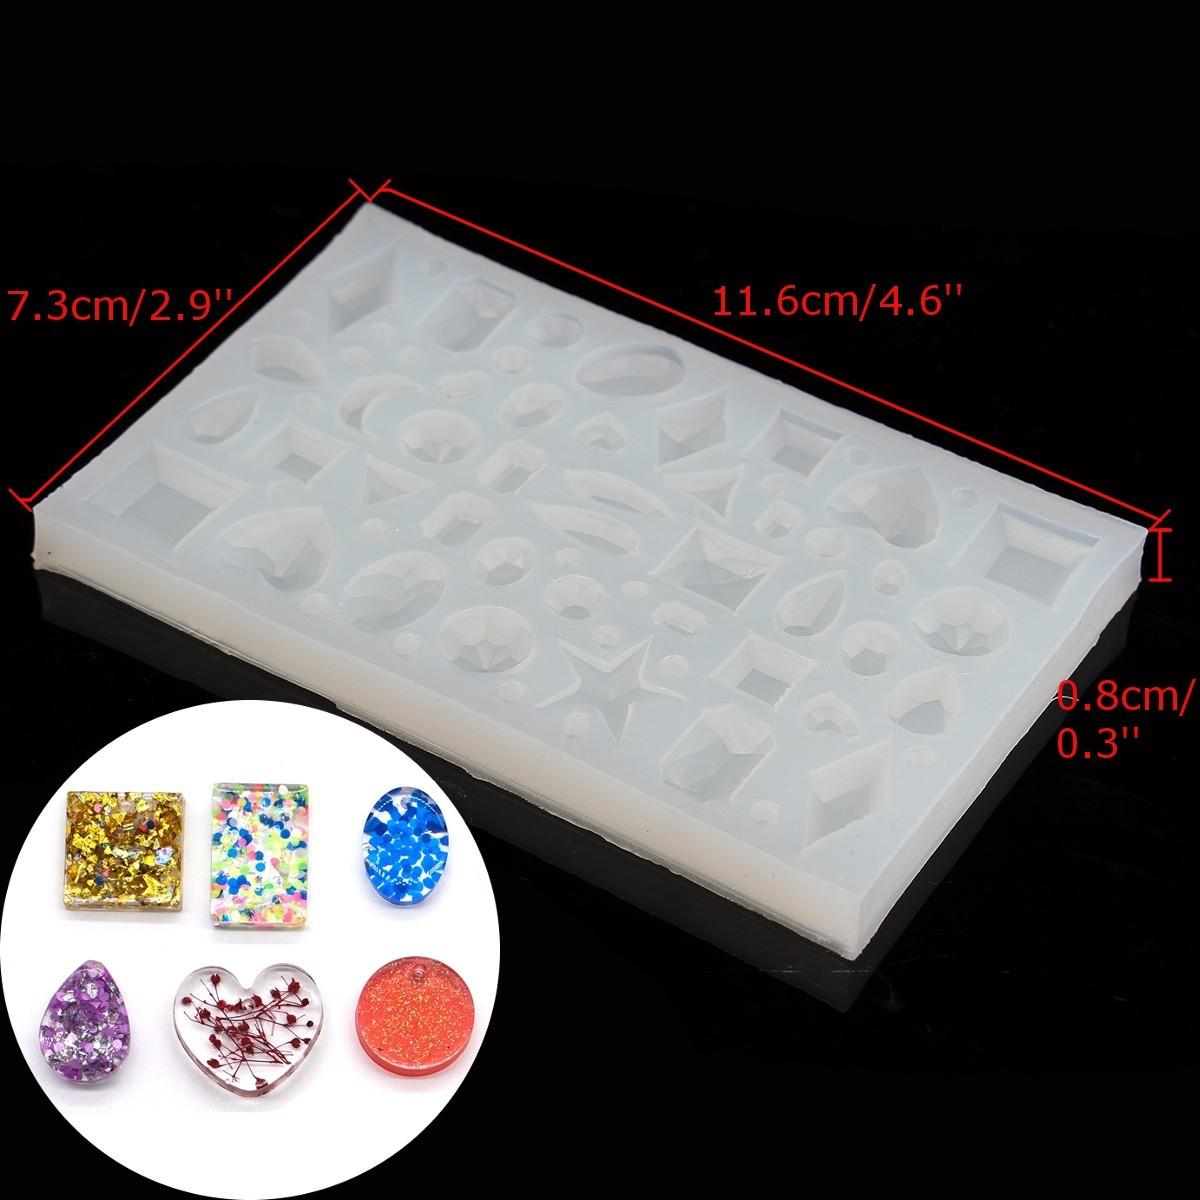 Diy Silicone Pendant Mold Making Jewelry Resin